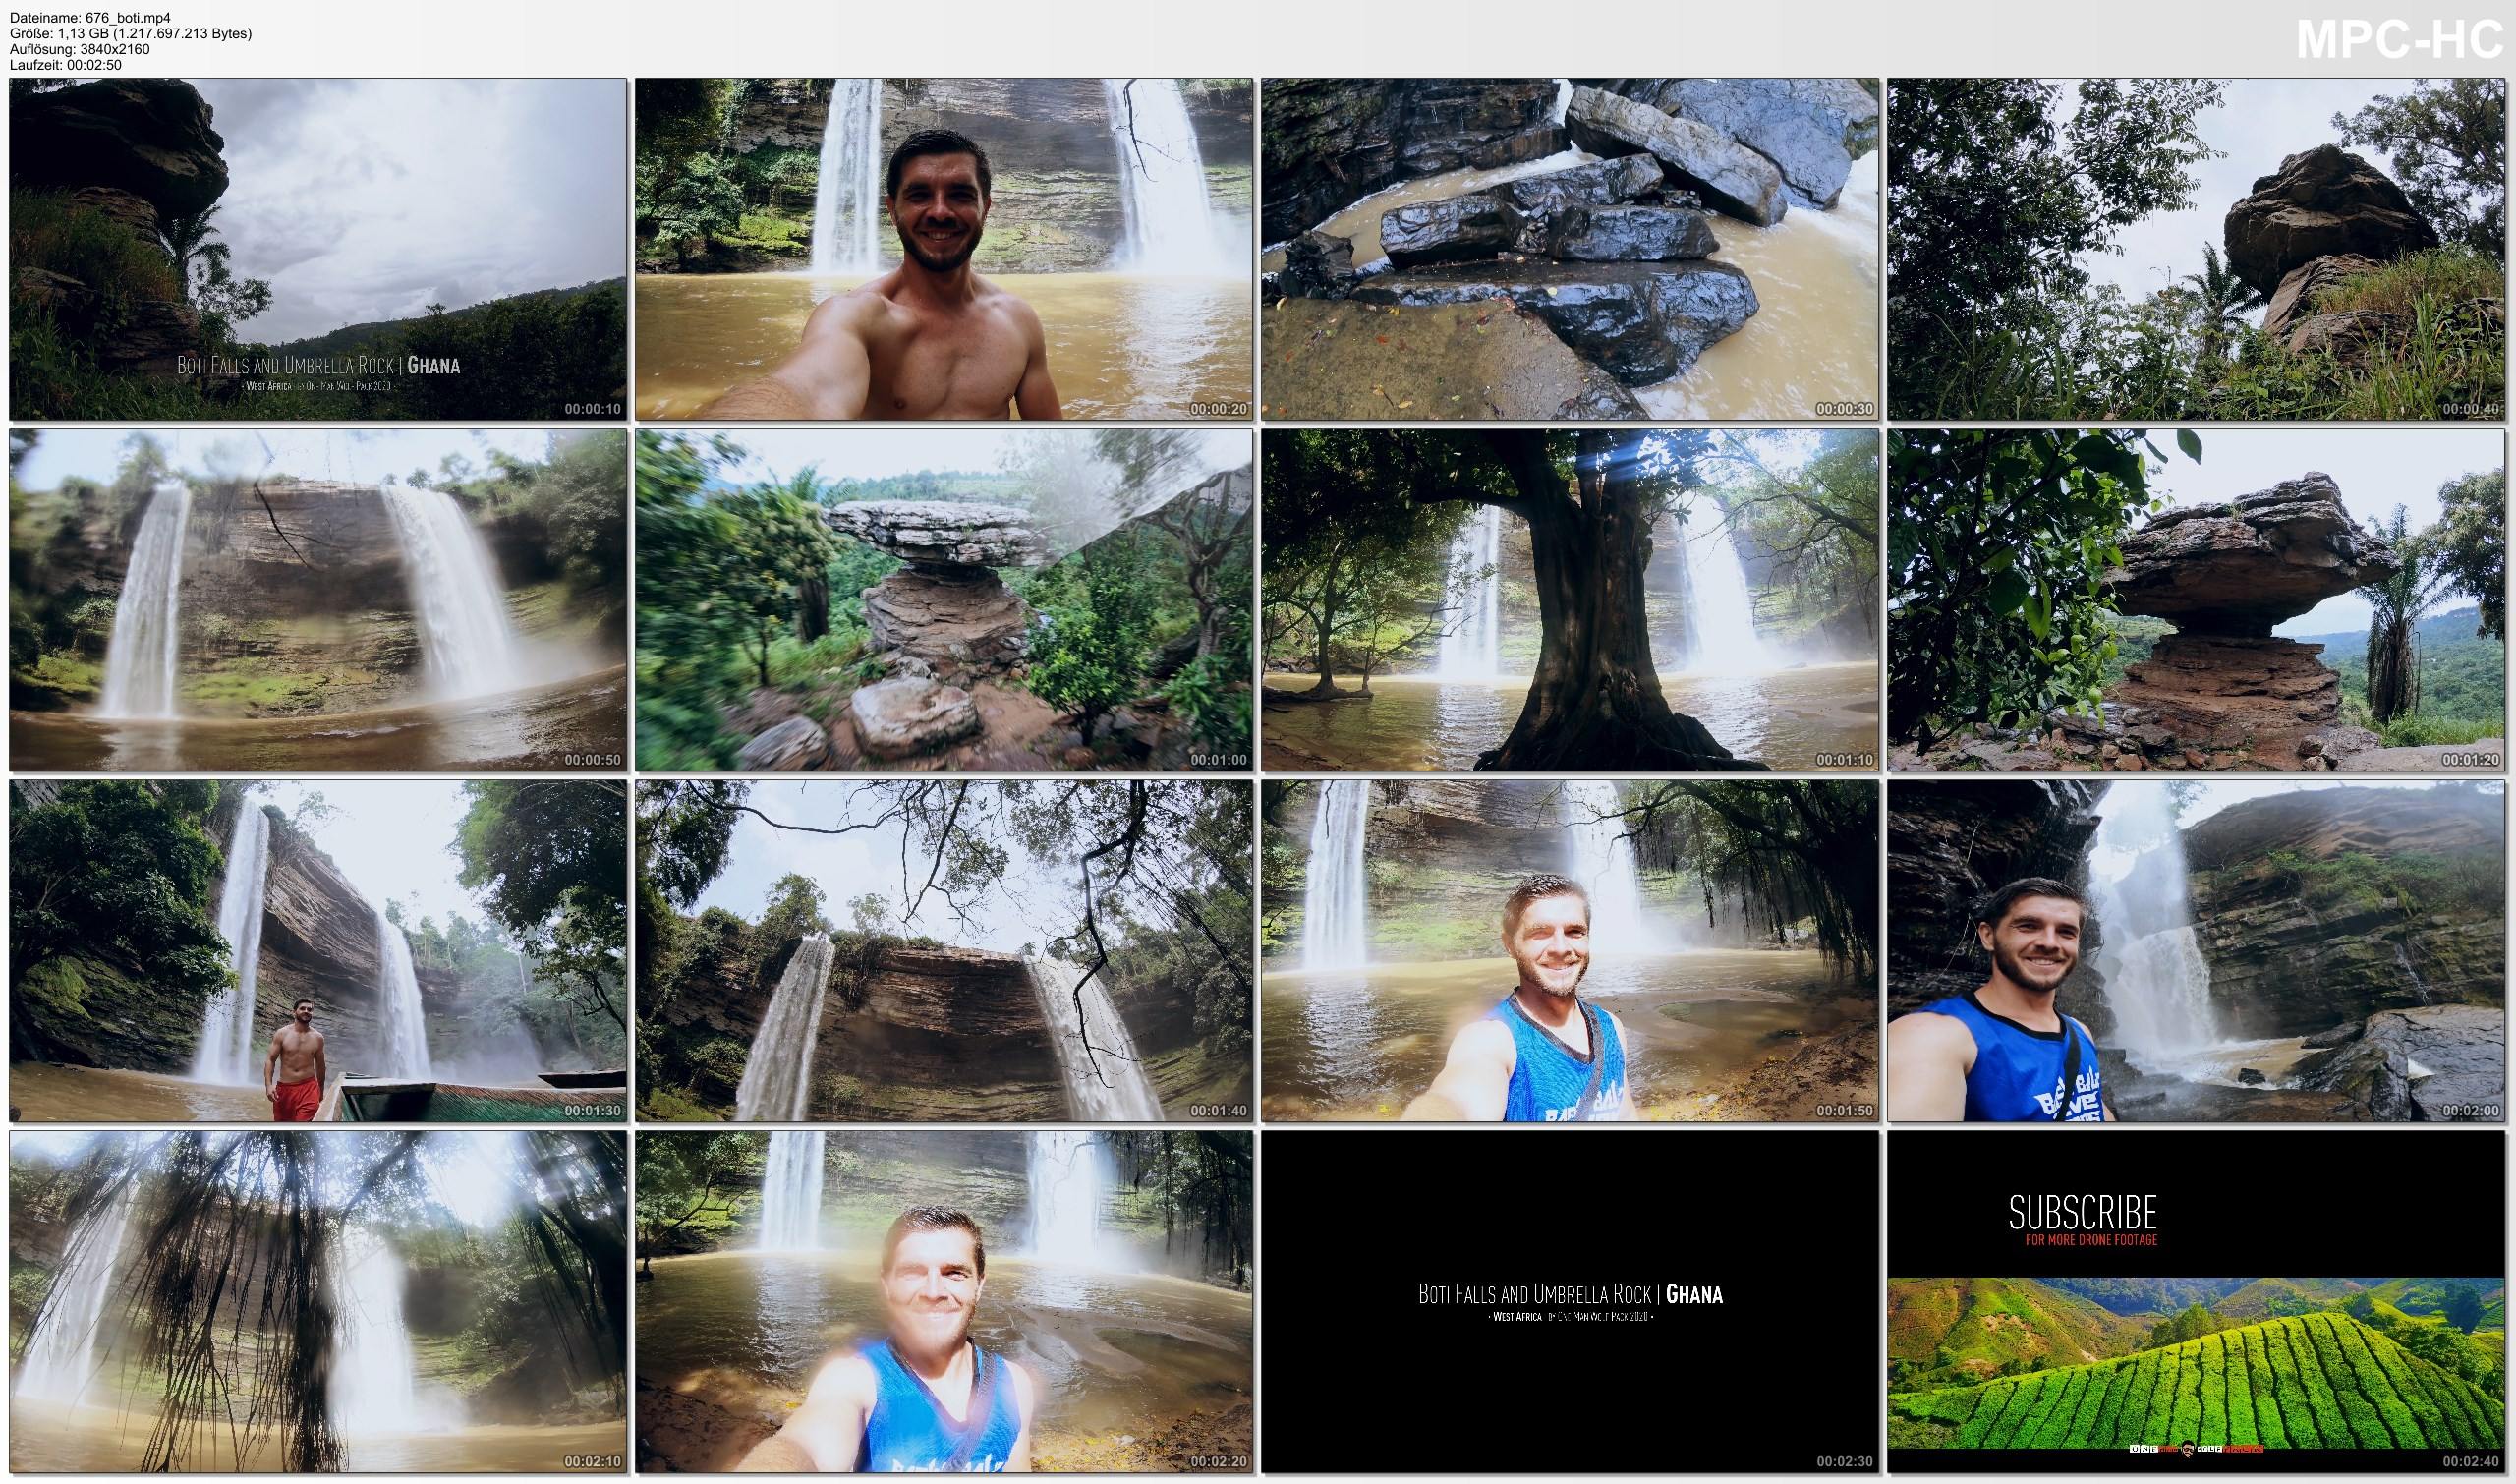 Pictures from Video 【4K】The Boti Falls and Umbrella Rock (Ghana) | 2020 | UltraHD Travel Video